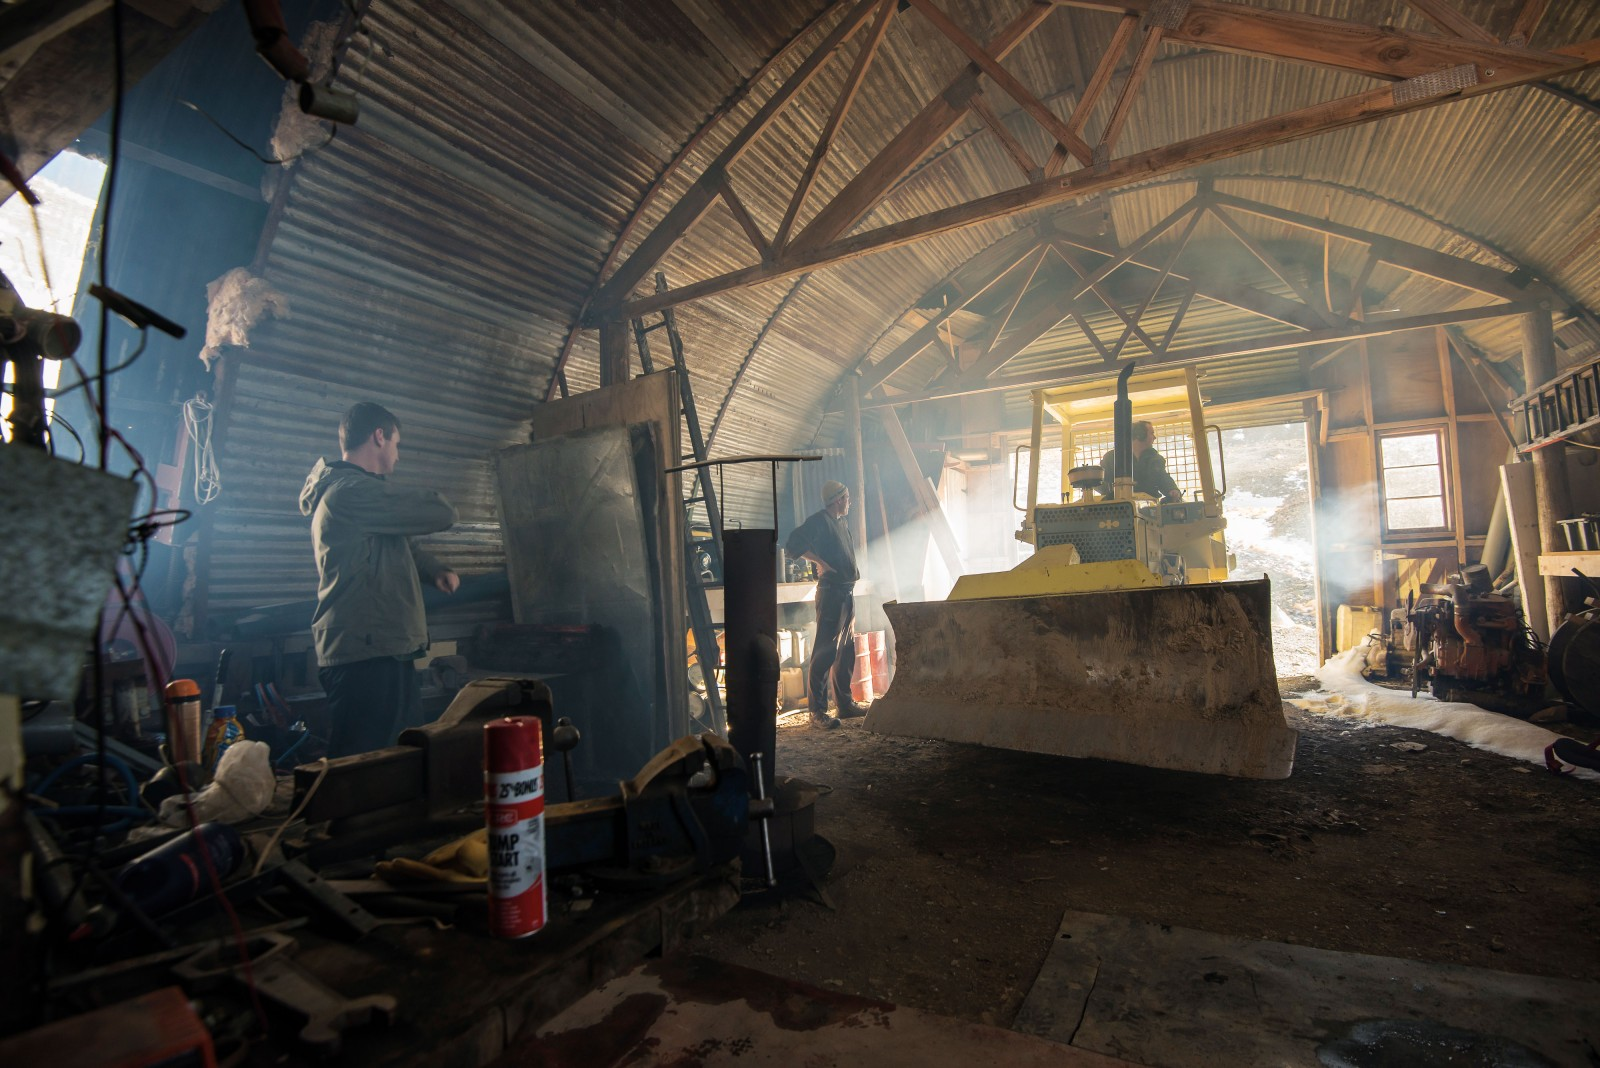 An ex-WWII Nissen army hut, salvaged and transplanted from a farm in Kurow, is the operational centre of the Awakino club, housing an assortment of machinery needed to run the ski field. Firing up the ancient but indispensable dozer involves persistence and plenty of 'Start ya Bastard' ether sprayed into the air intake to facilitate ignition.